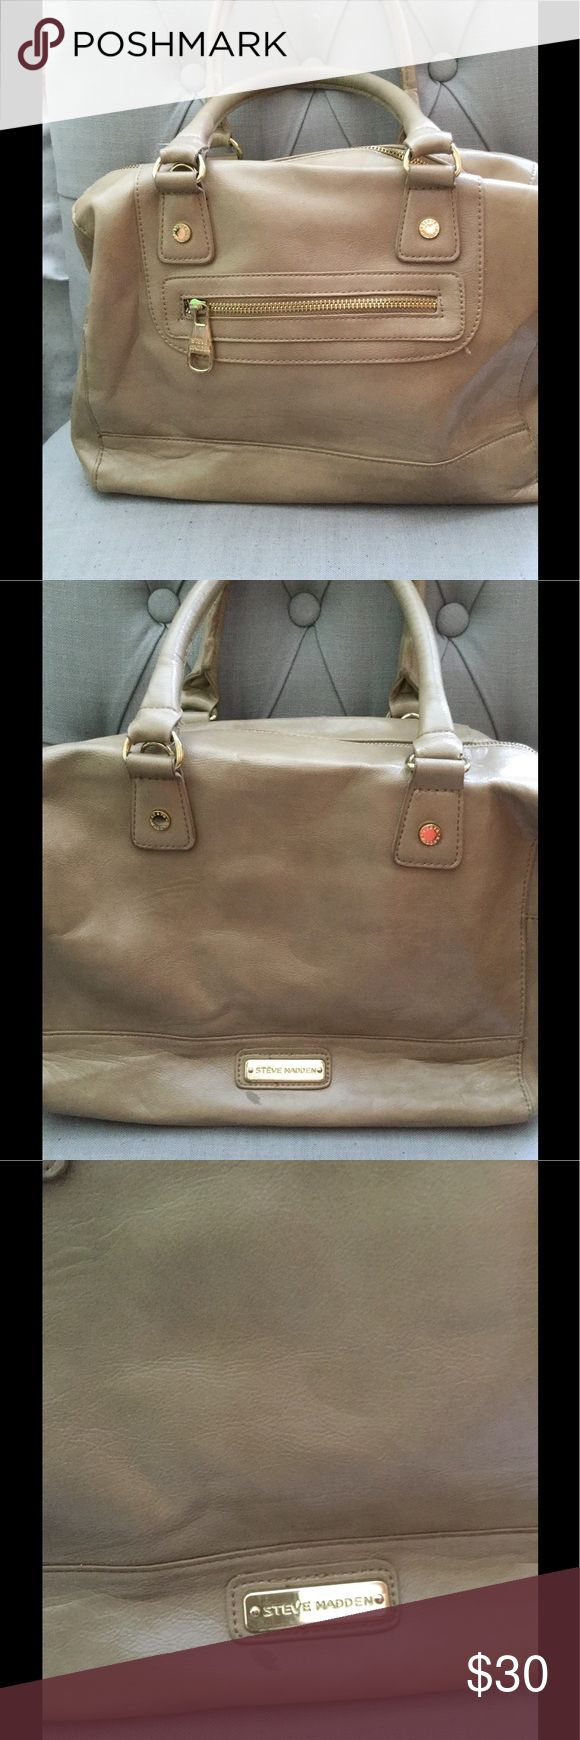 Nude Steve Madden Bag This bag is the perfect size for everyday! Plenty of room to store everything you need! There is a small mark next to the Steve Madden label which is pictured. It also has a detachable strap to make it into a shoulder bag! Steve Madden Bags Shoulder Bags